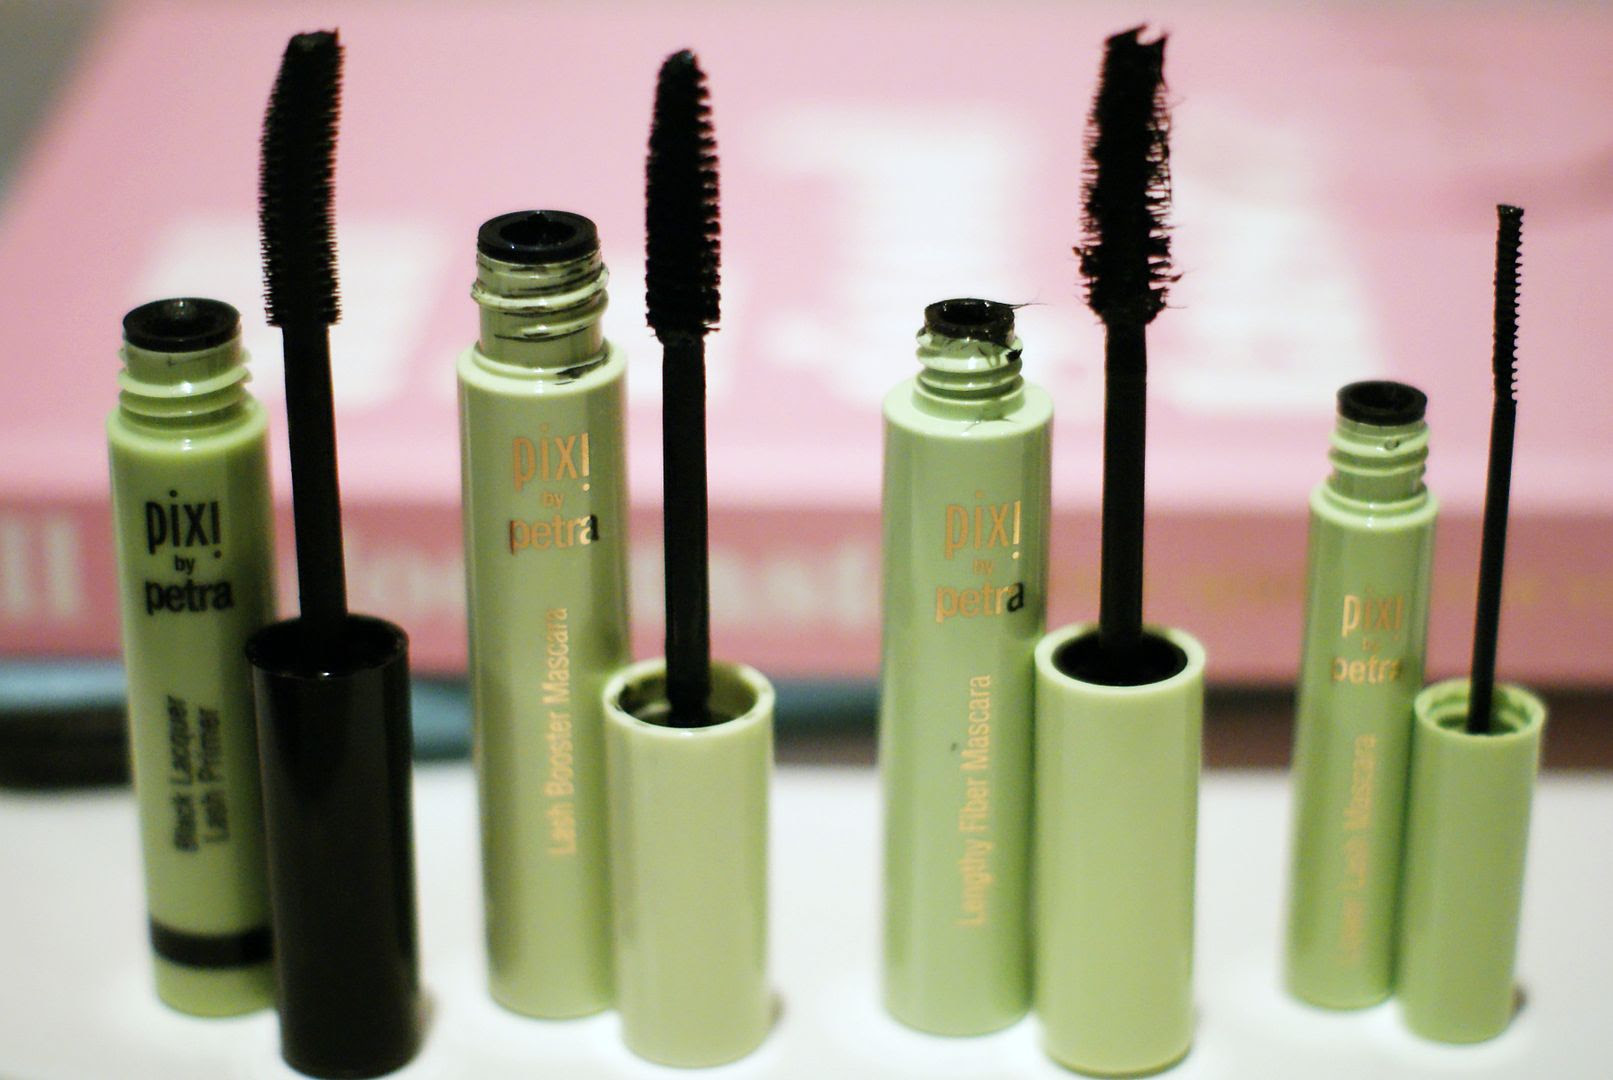 Pixi Mascara Review